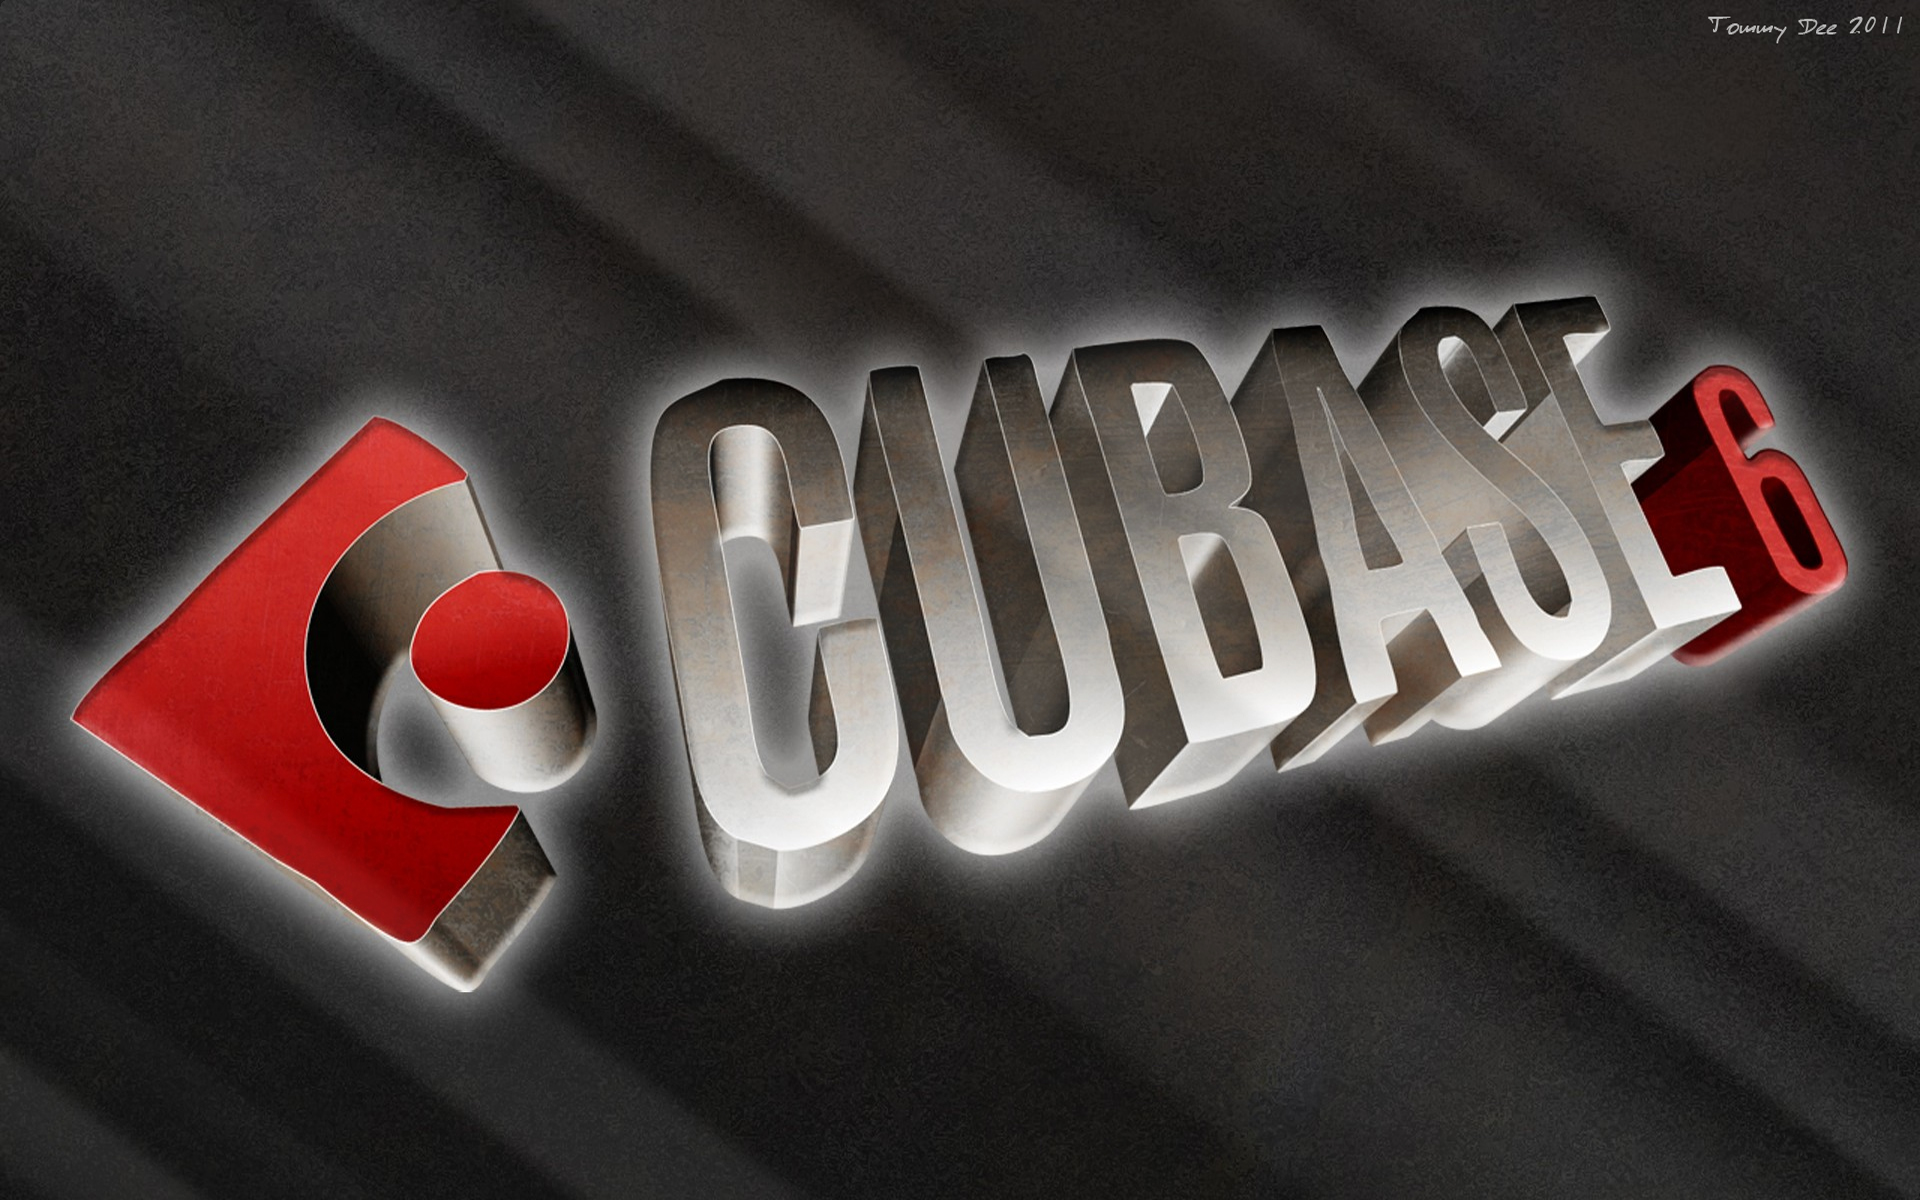 cubase wallpaper wallpapersafari